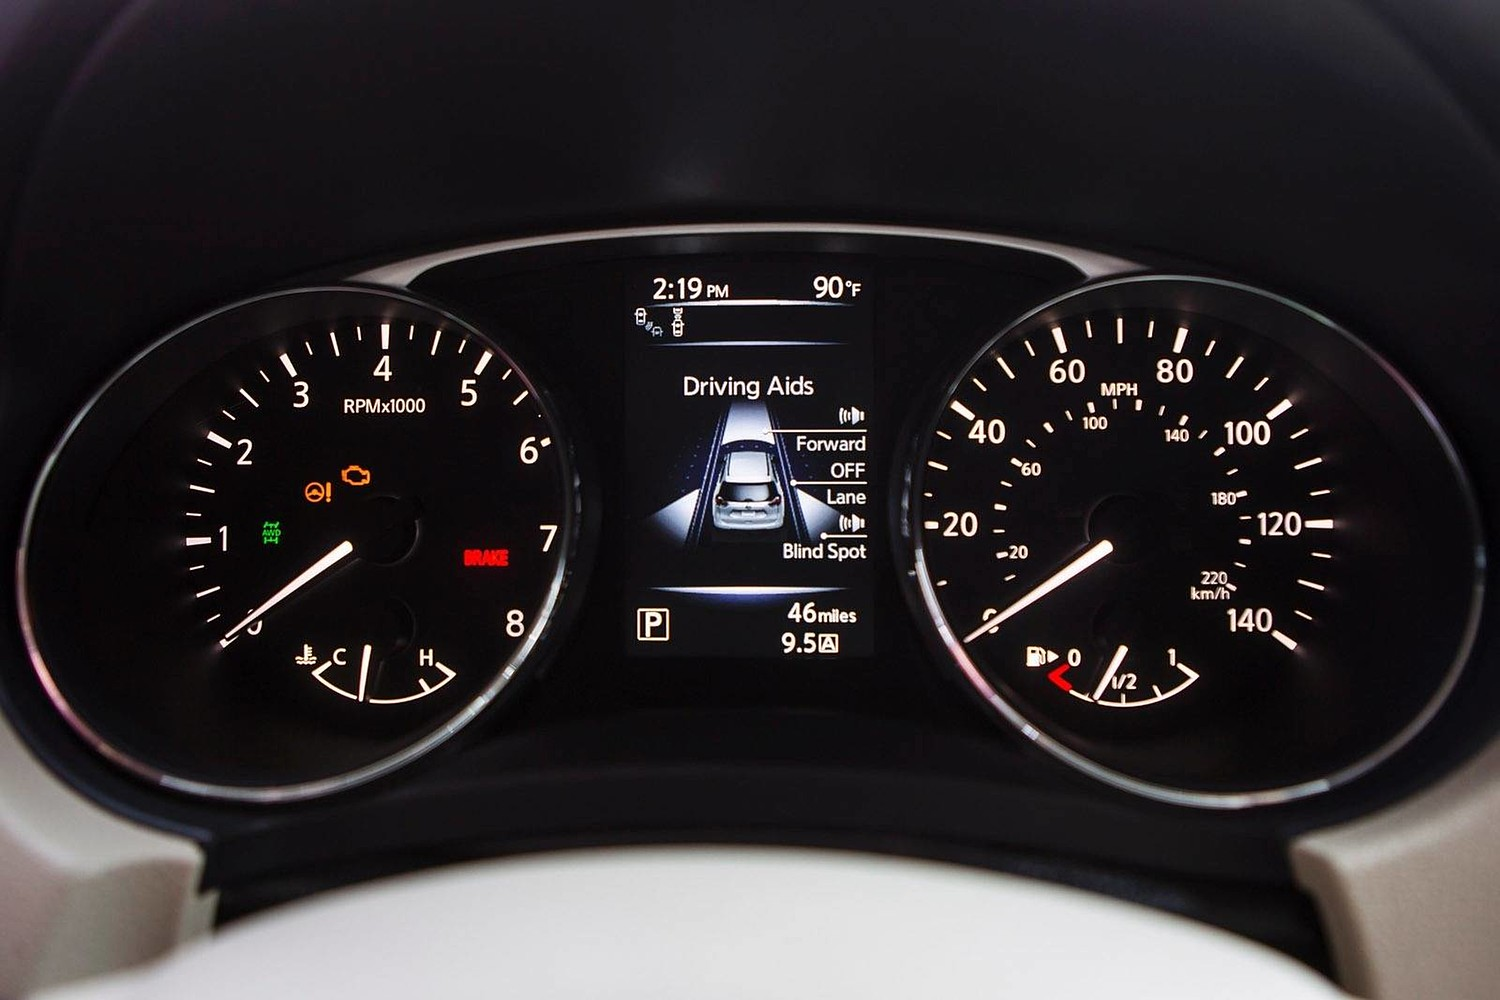 Nissan Rogue SL 4dr SUV Gauge Cluster (2014 model year shown)